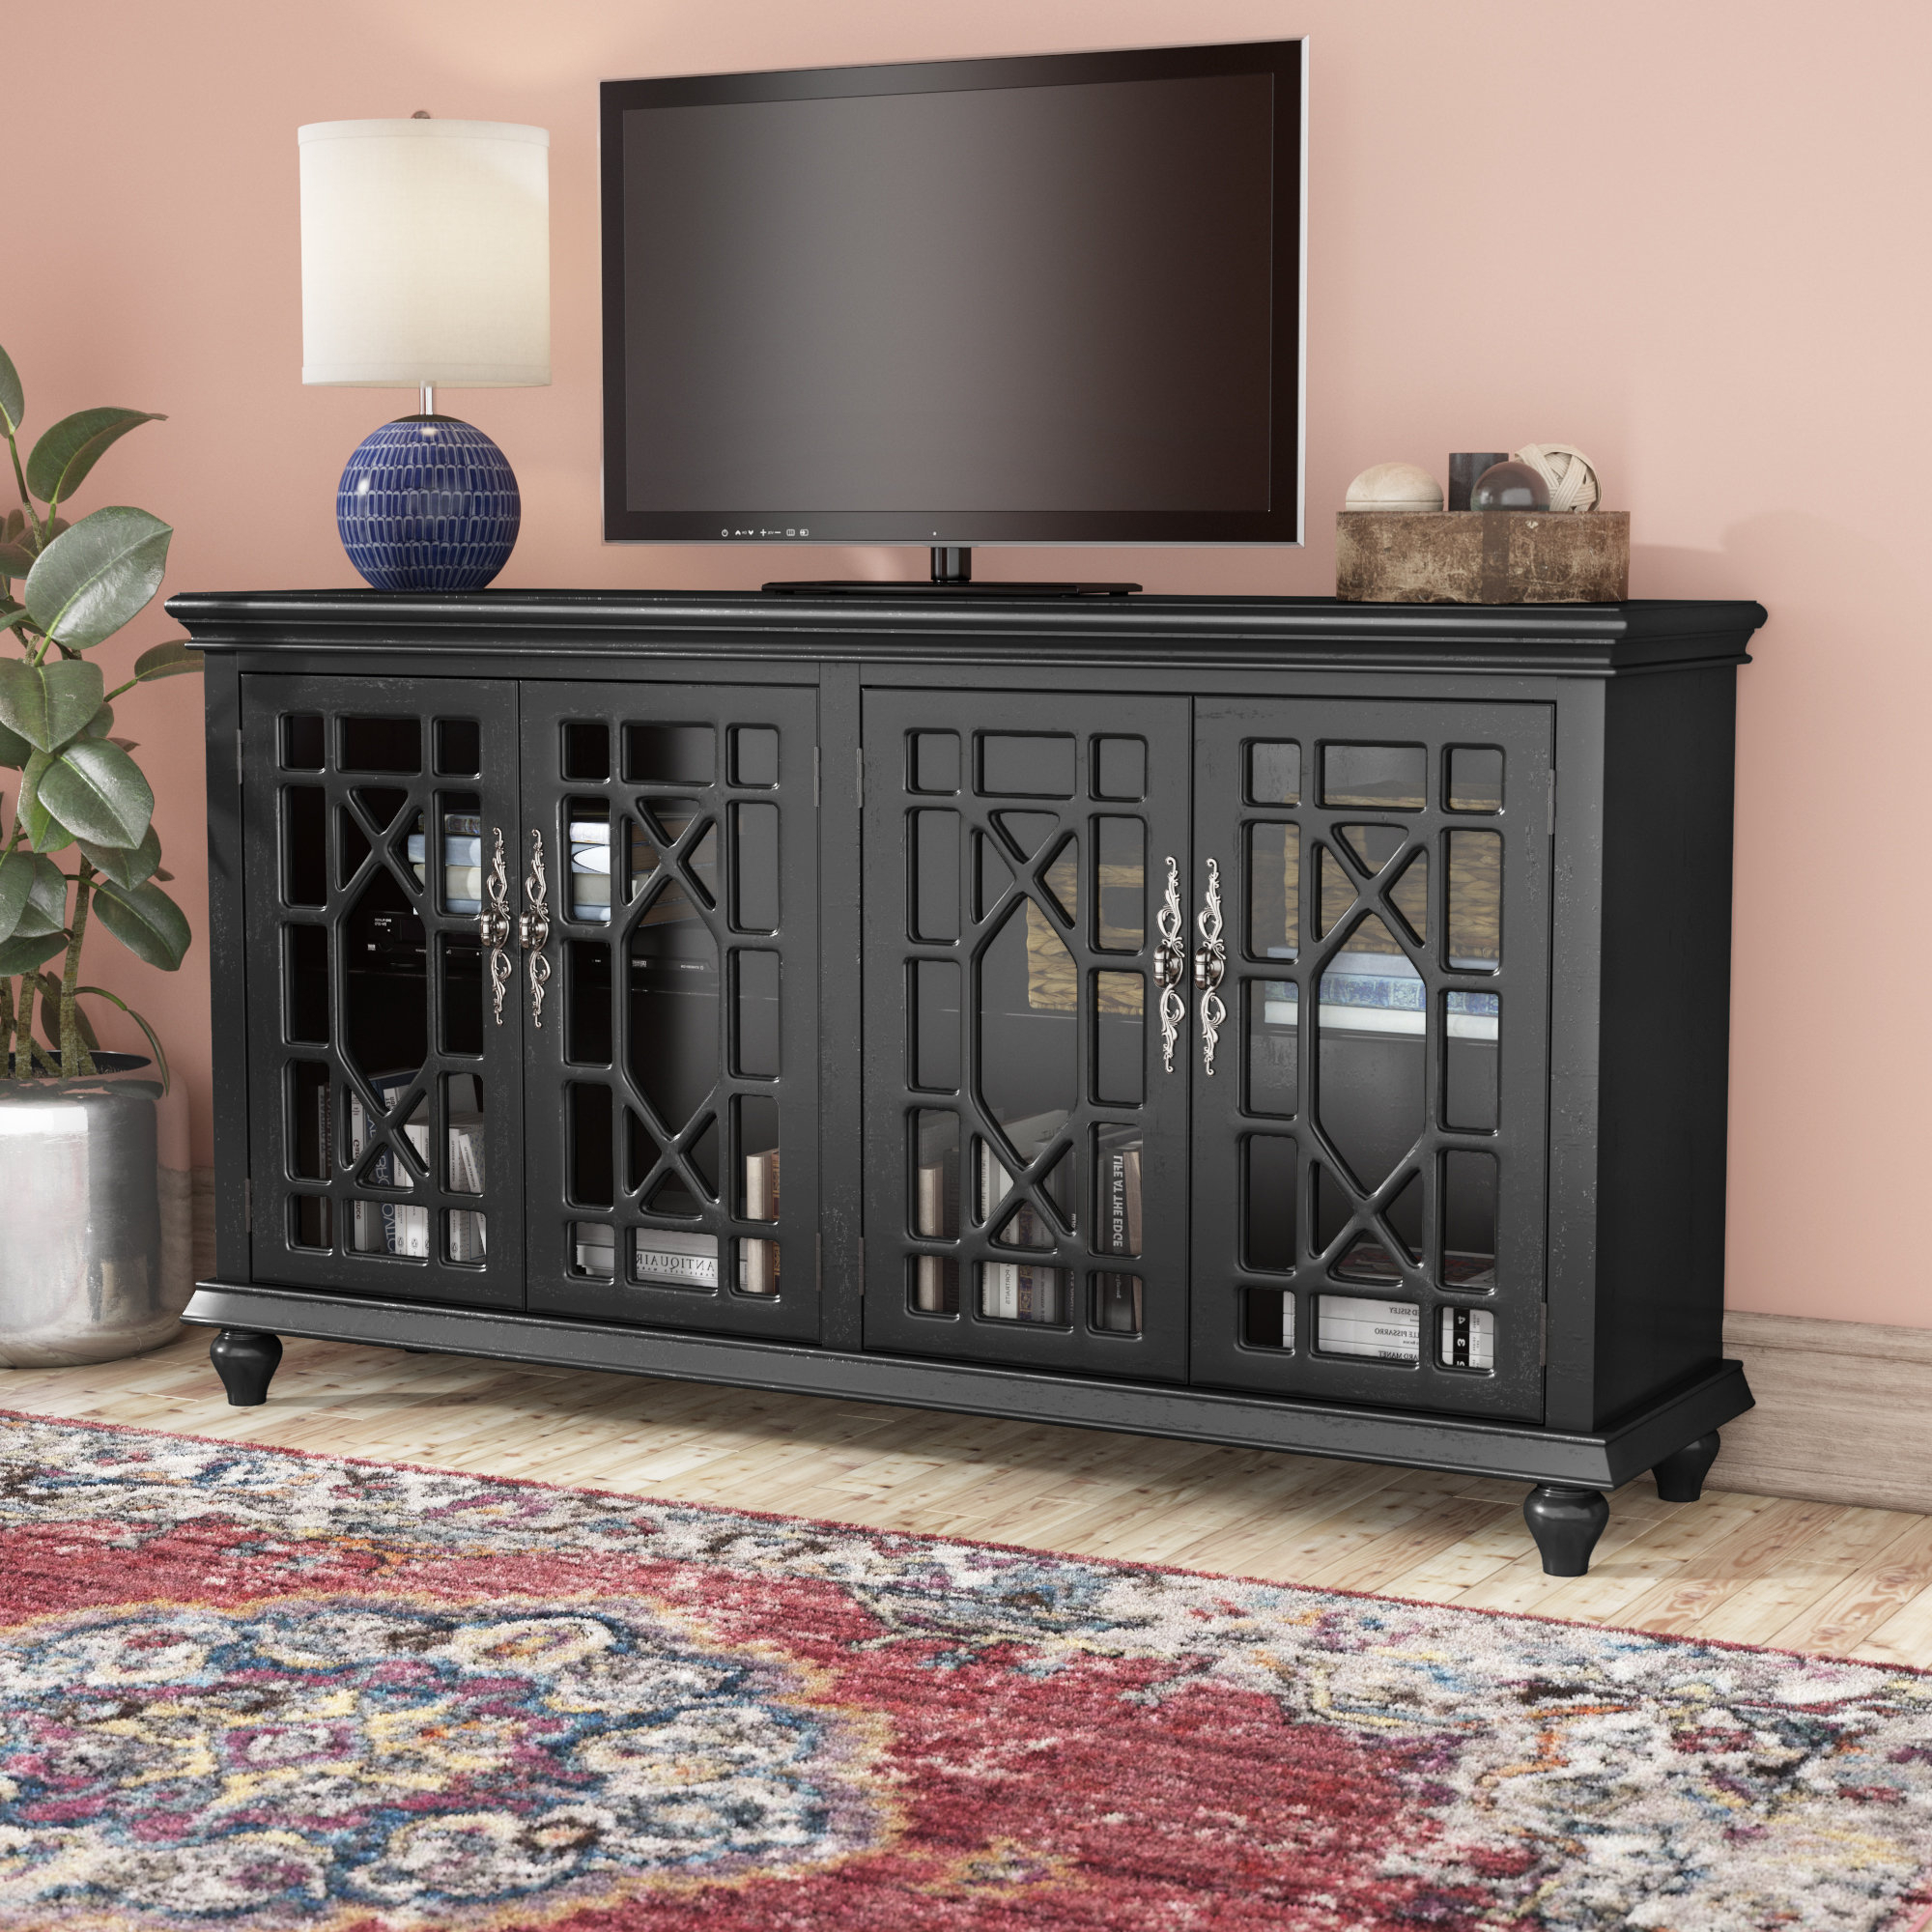 Tall Tv Stands You'll Love | Wayfair For Canyon 64 Inch Tv Stands (Gallery 16 of 20)